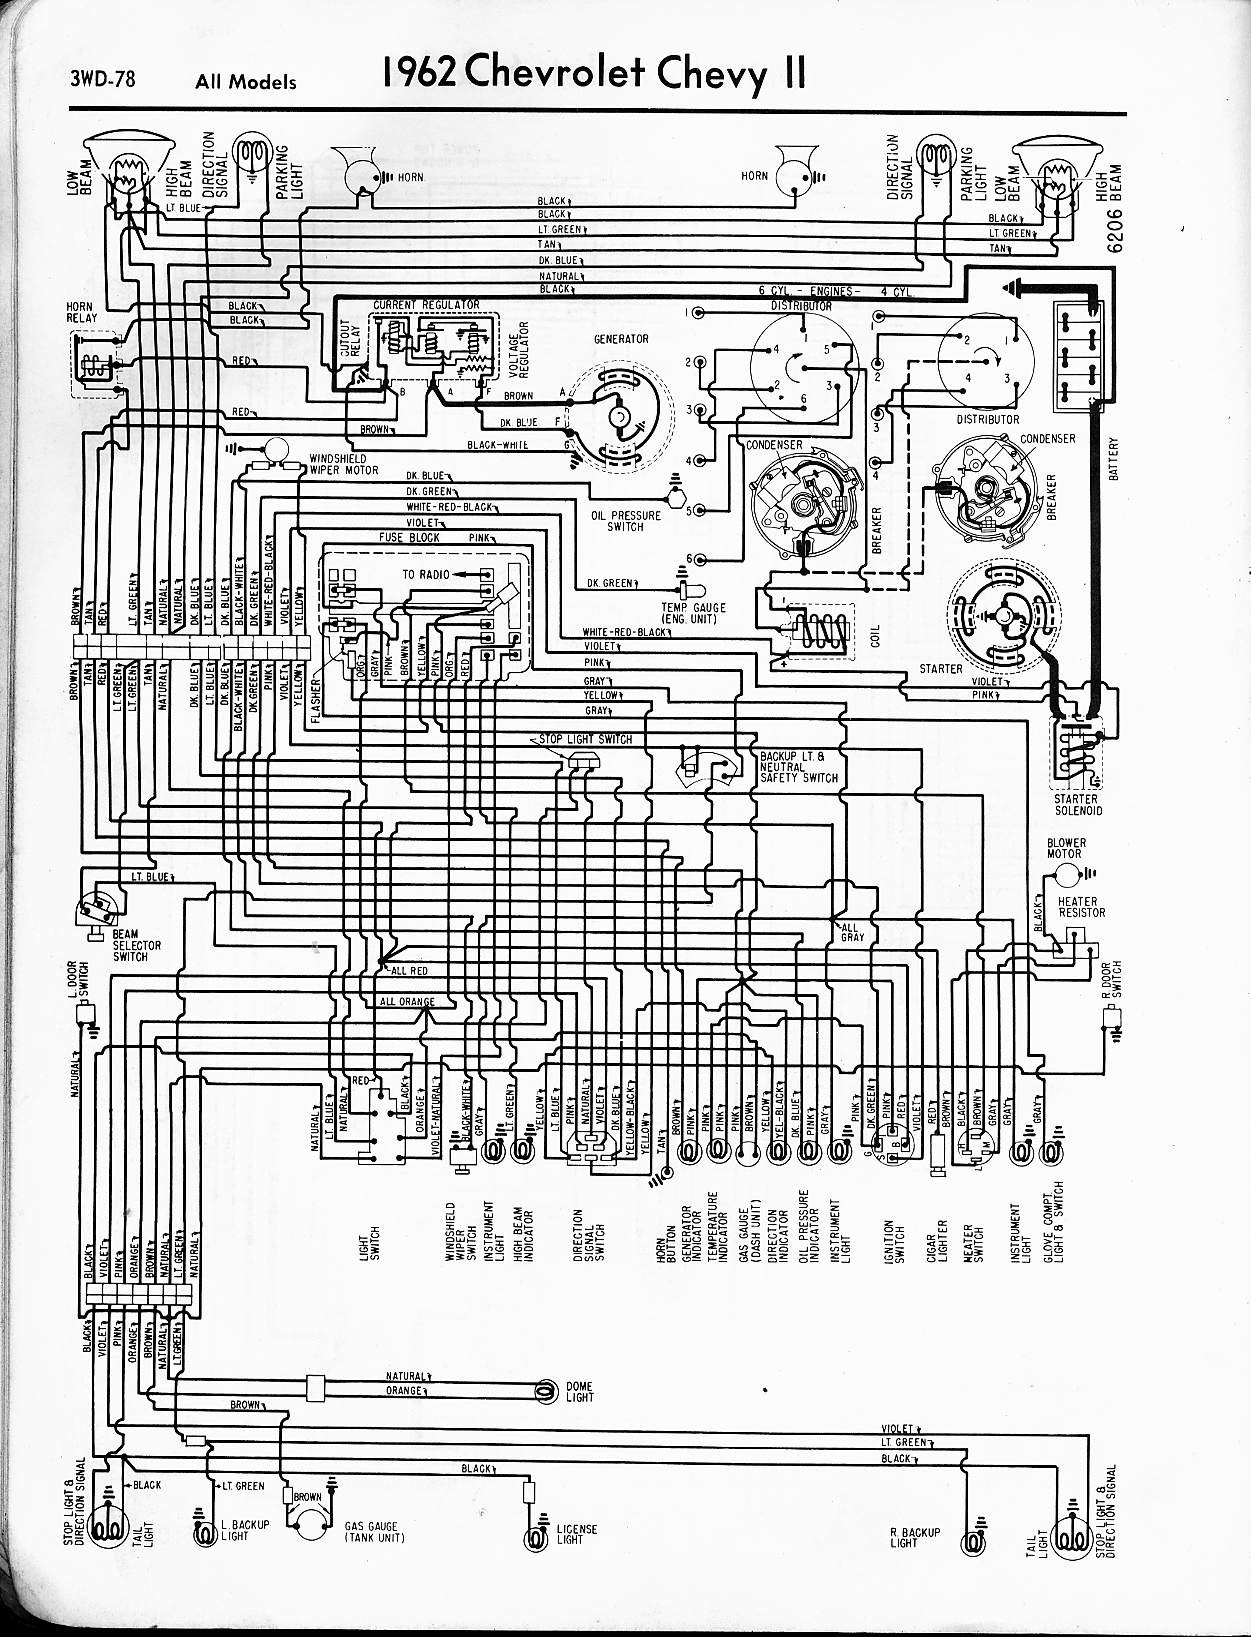 2005 Chevy Impala Engine Diagram Wiring Library 57 65 Diagrams Of